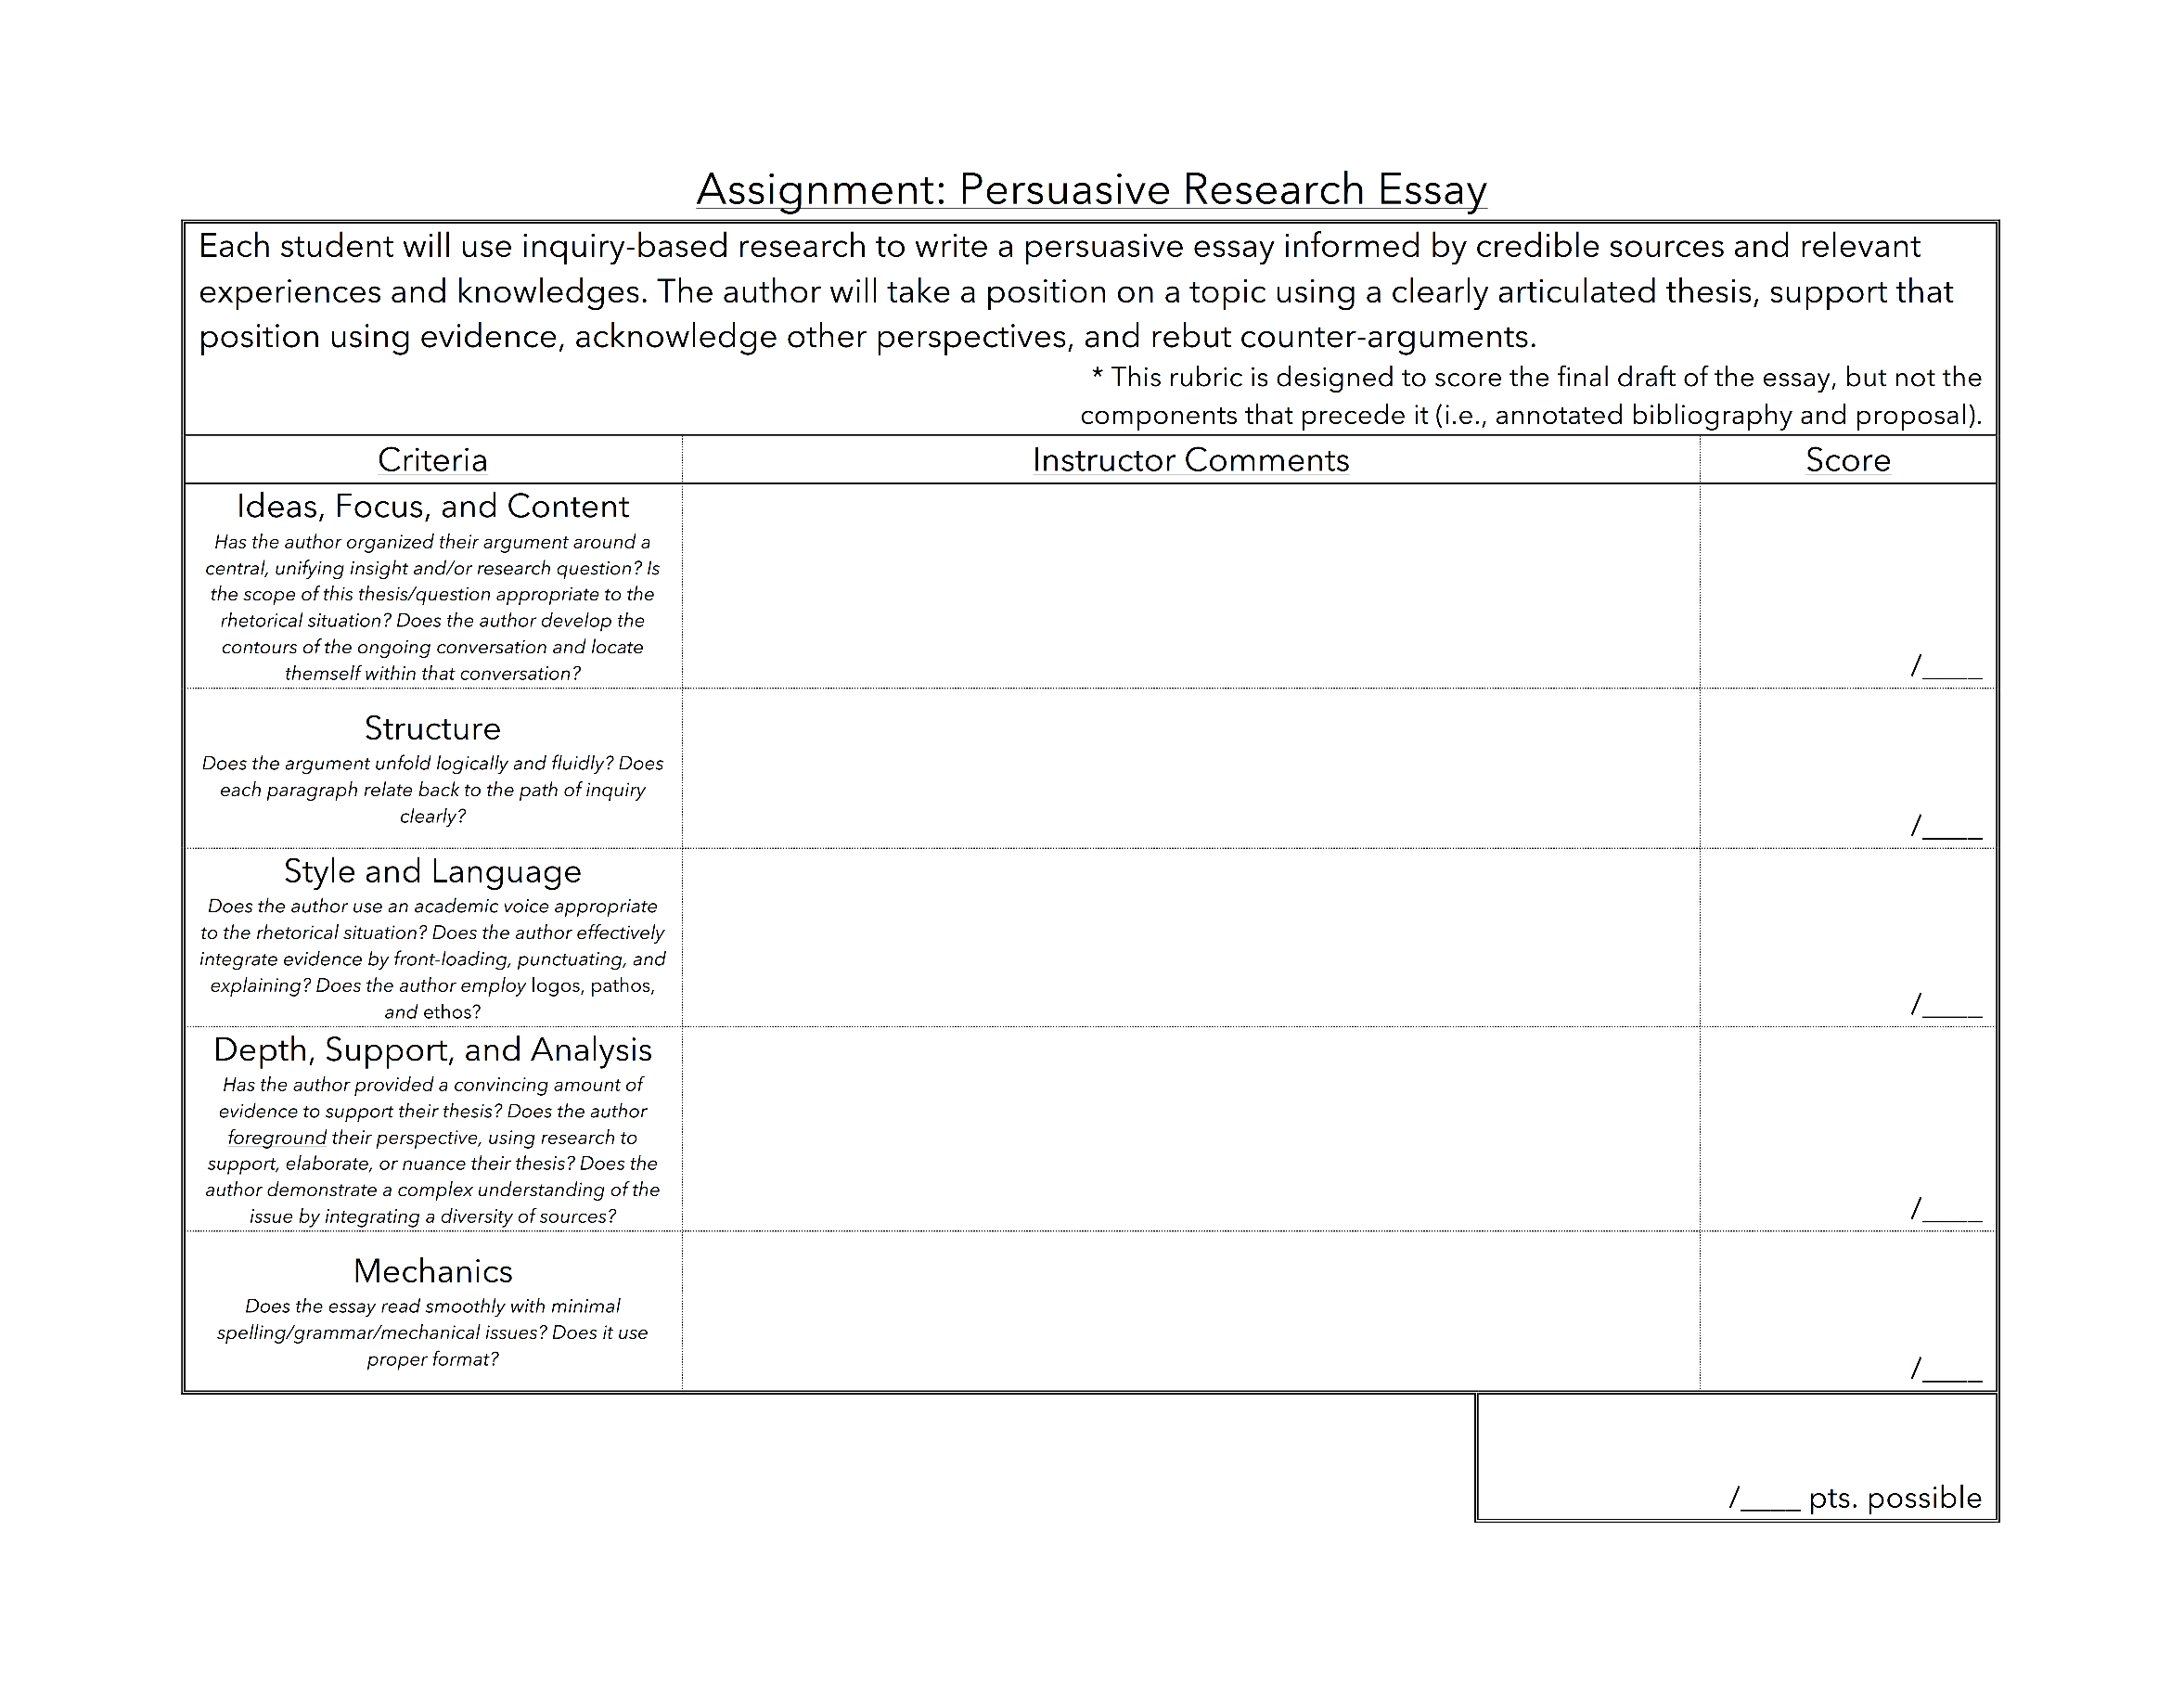 Rubric for Persuasive Research Essay Assignment. For accessible version, contact pdxscholar@pdx.edu.